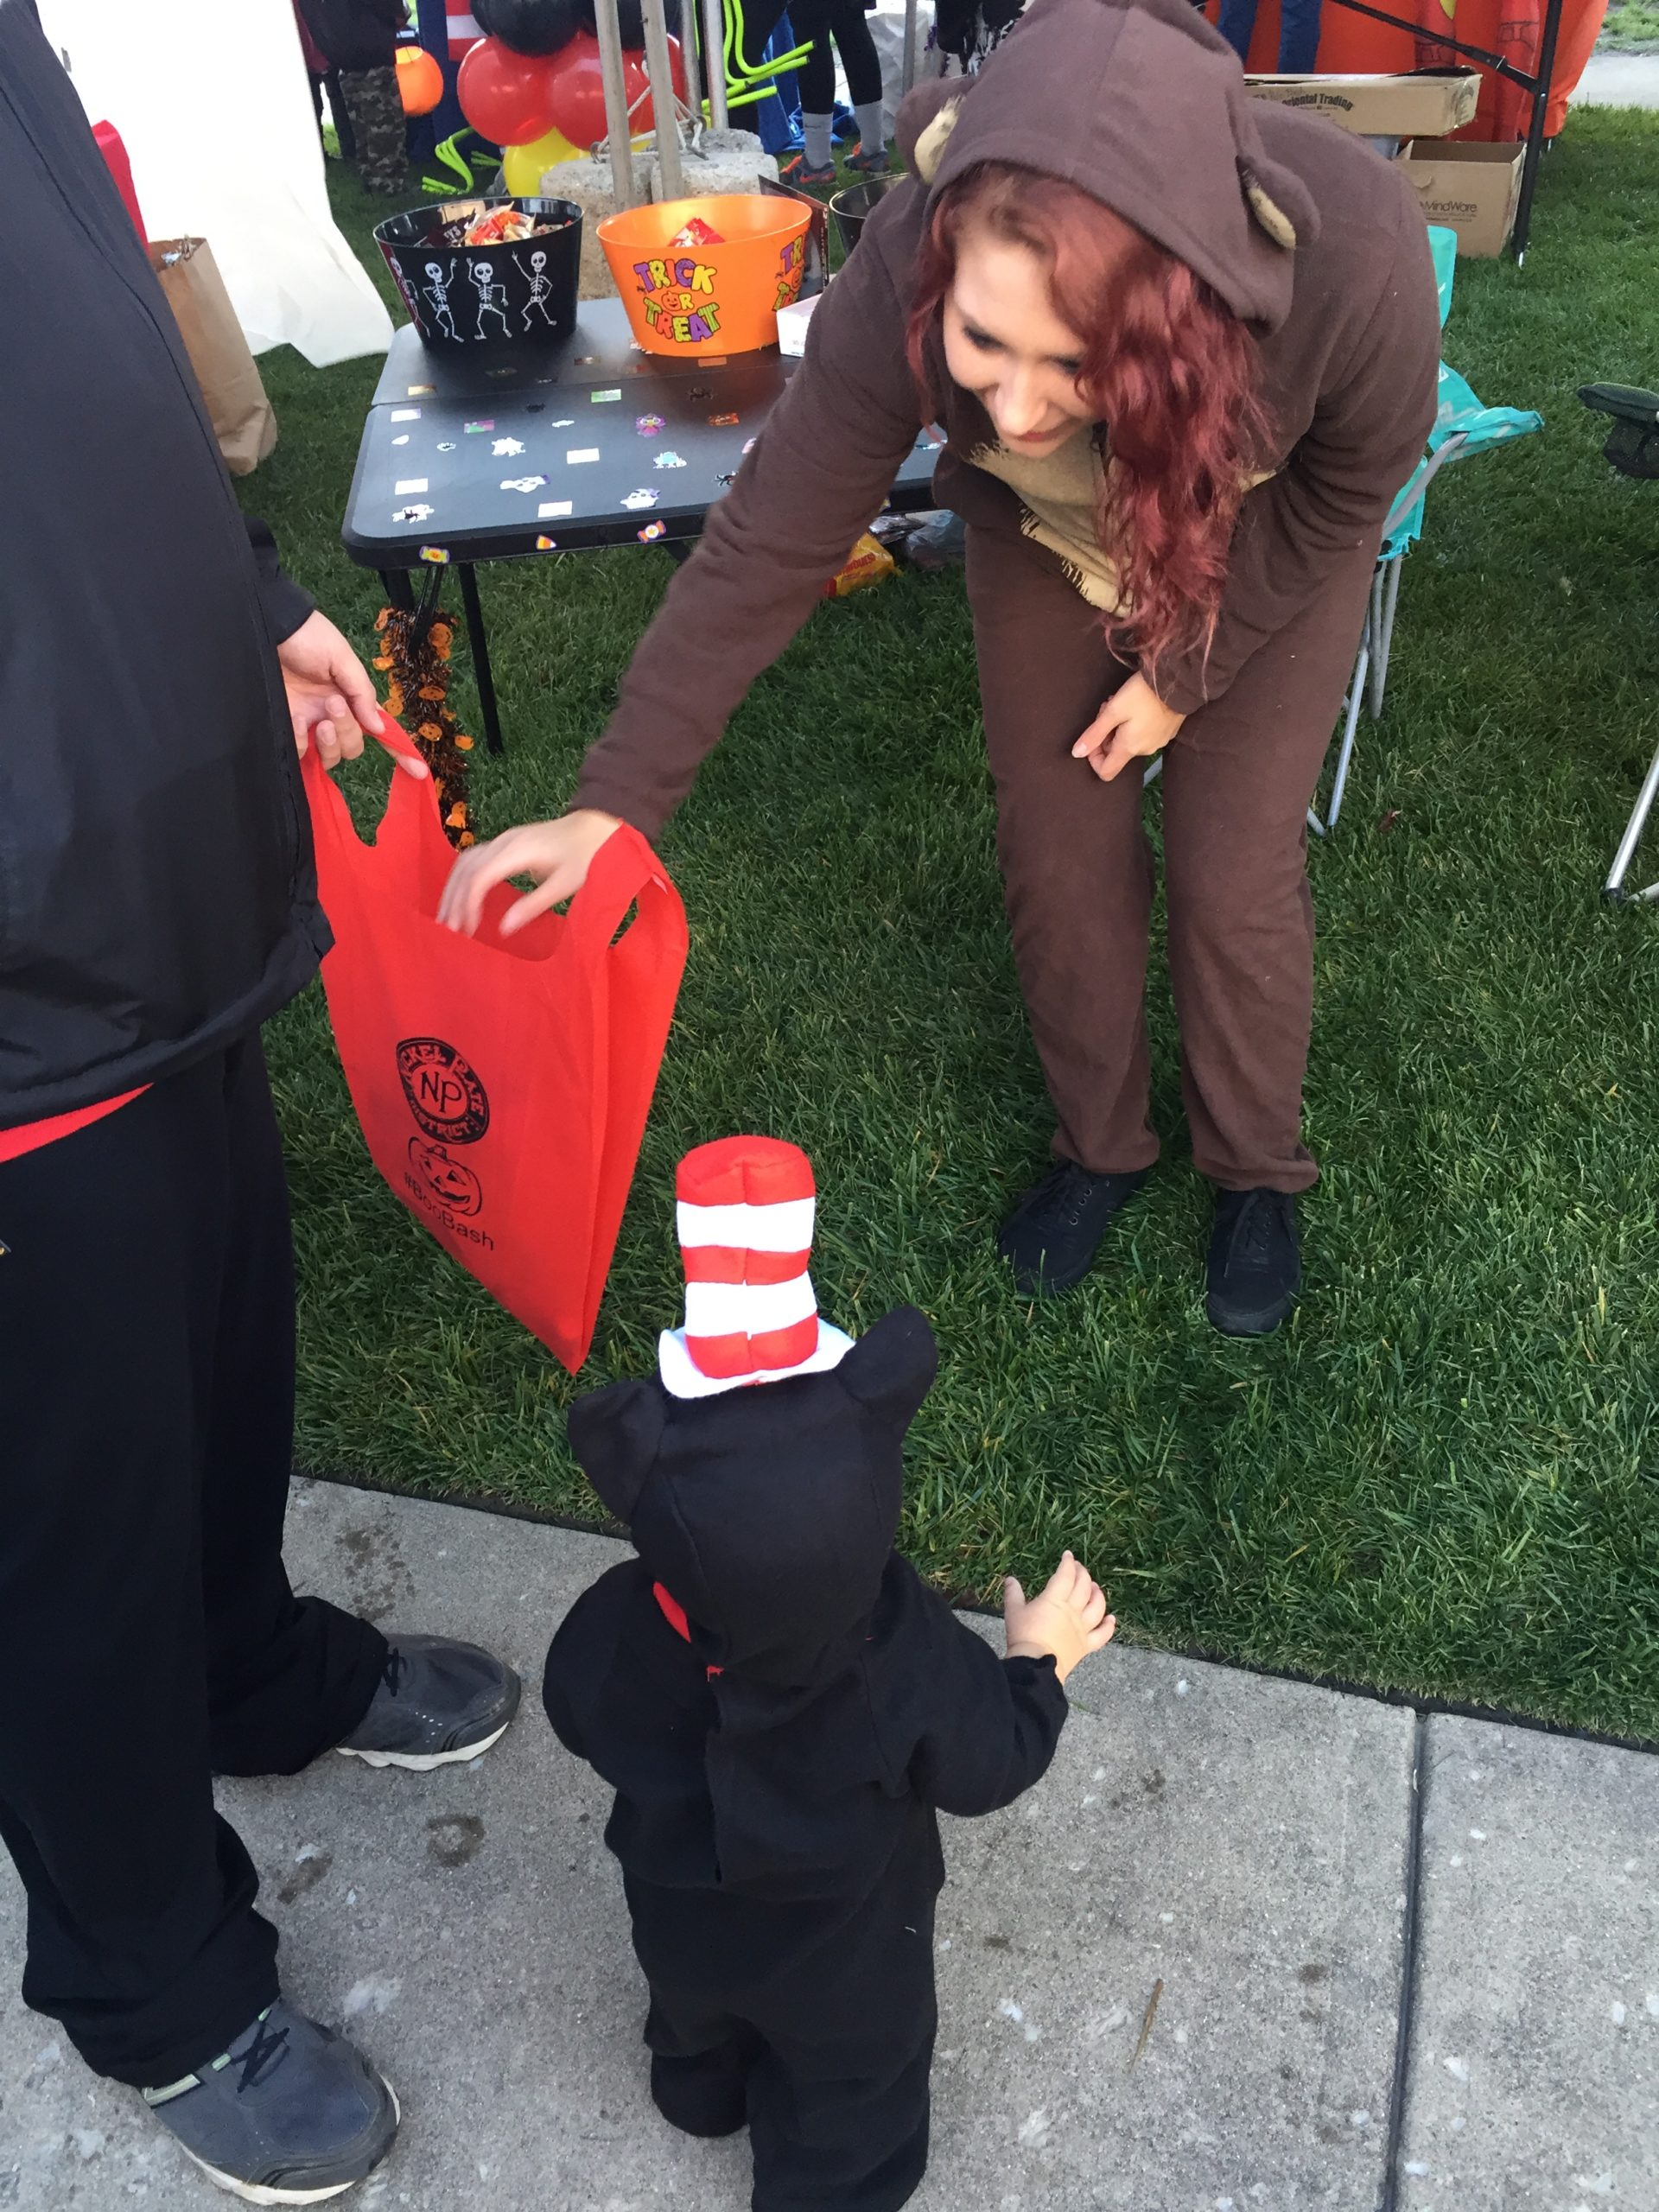 vendor giving out candy